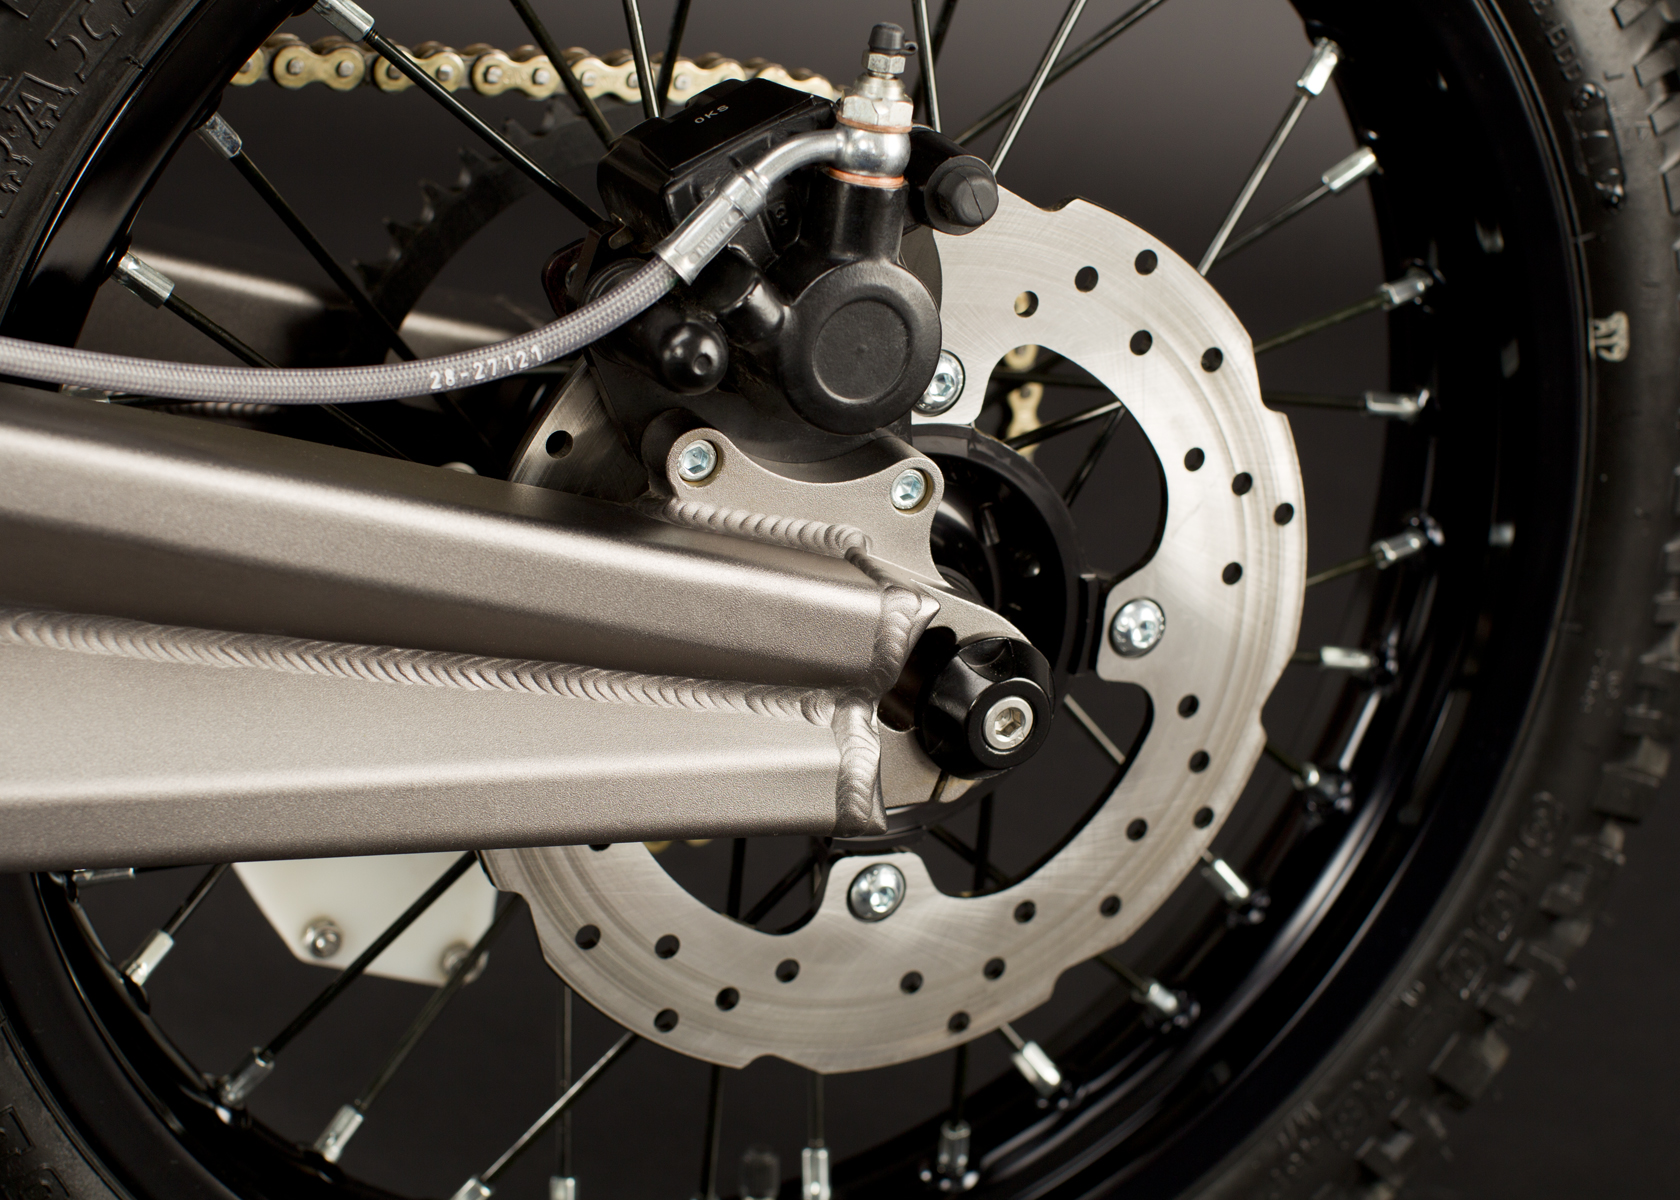 2011 Zero X Electric Motorcycle: Back Brake